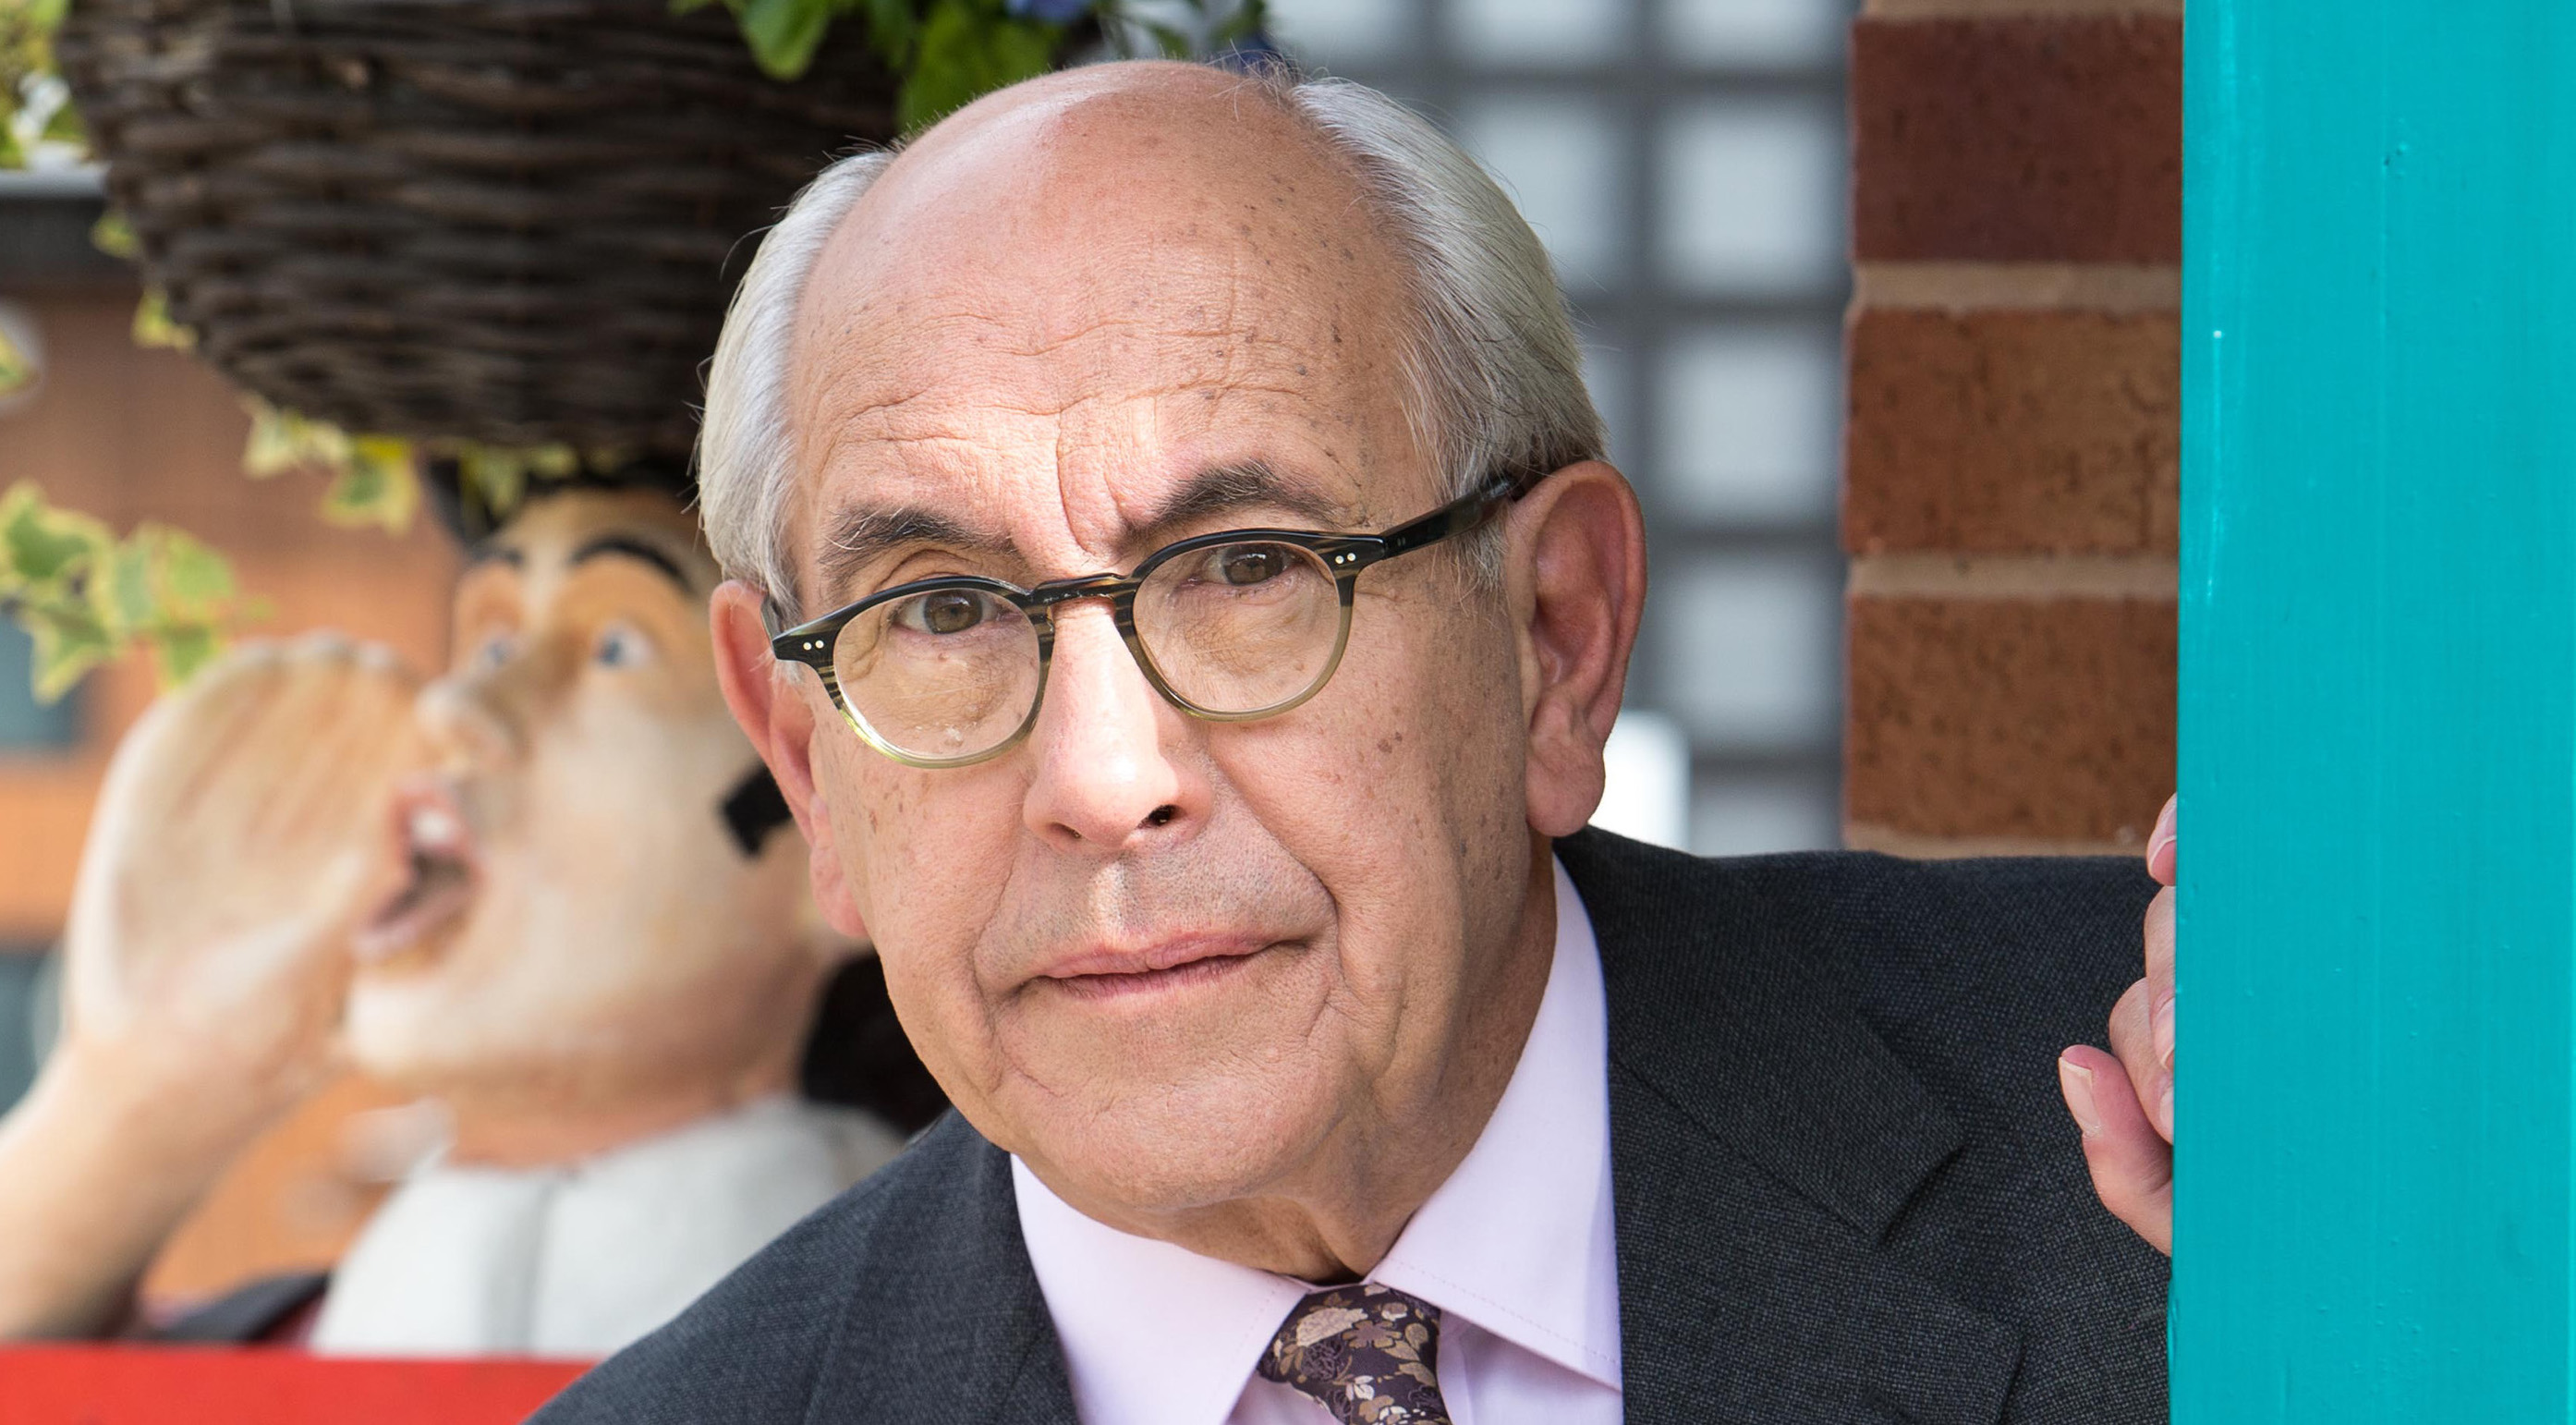 Coronation Street return for Norris Cole as Malcolm Hebden is pictured on set?